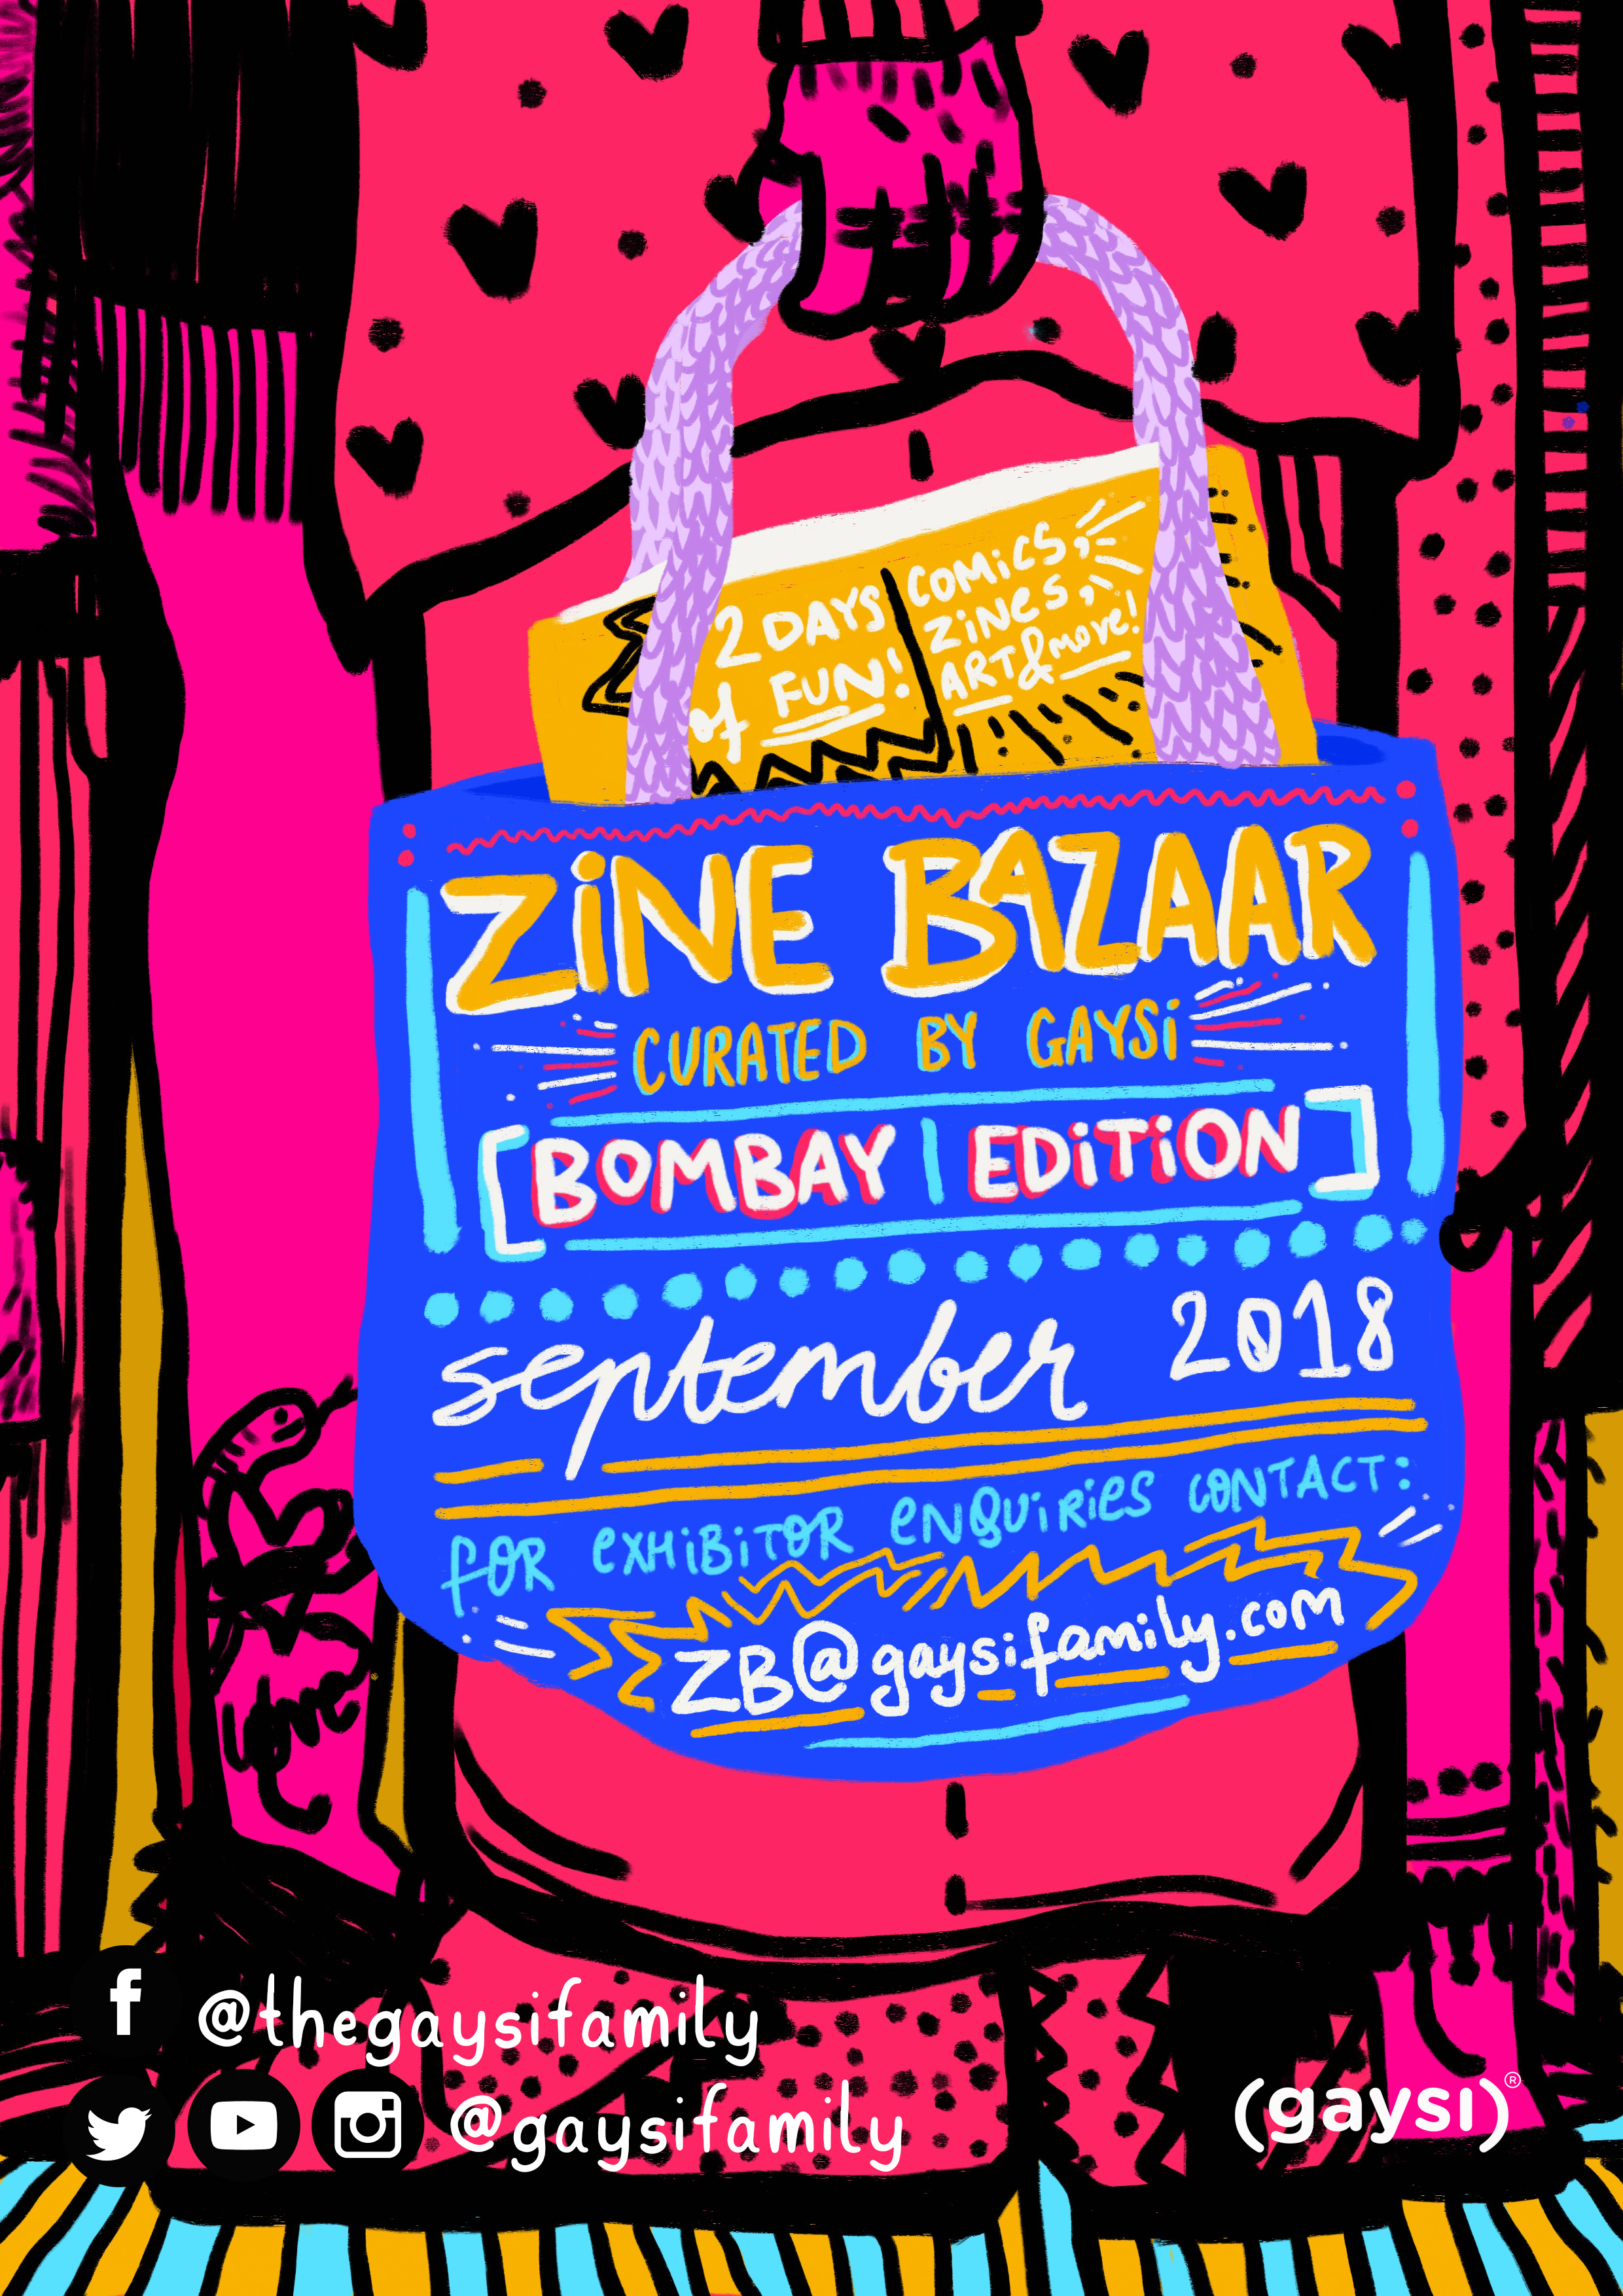 Zine Bazaar (Bombay Edition): Call Out For Exhibitors!